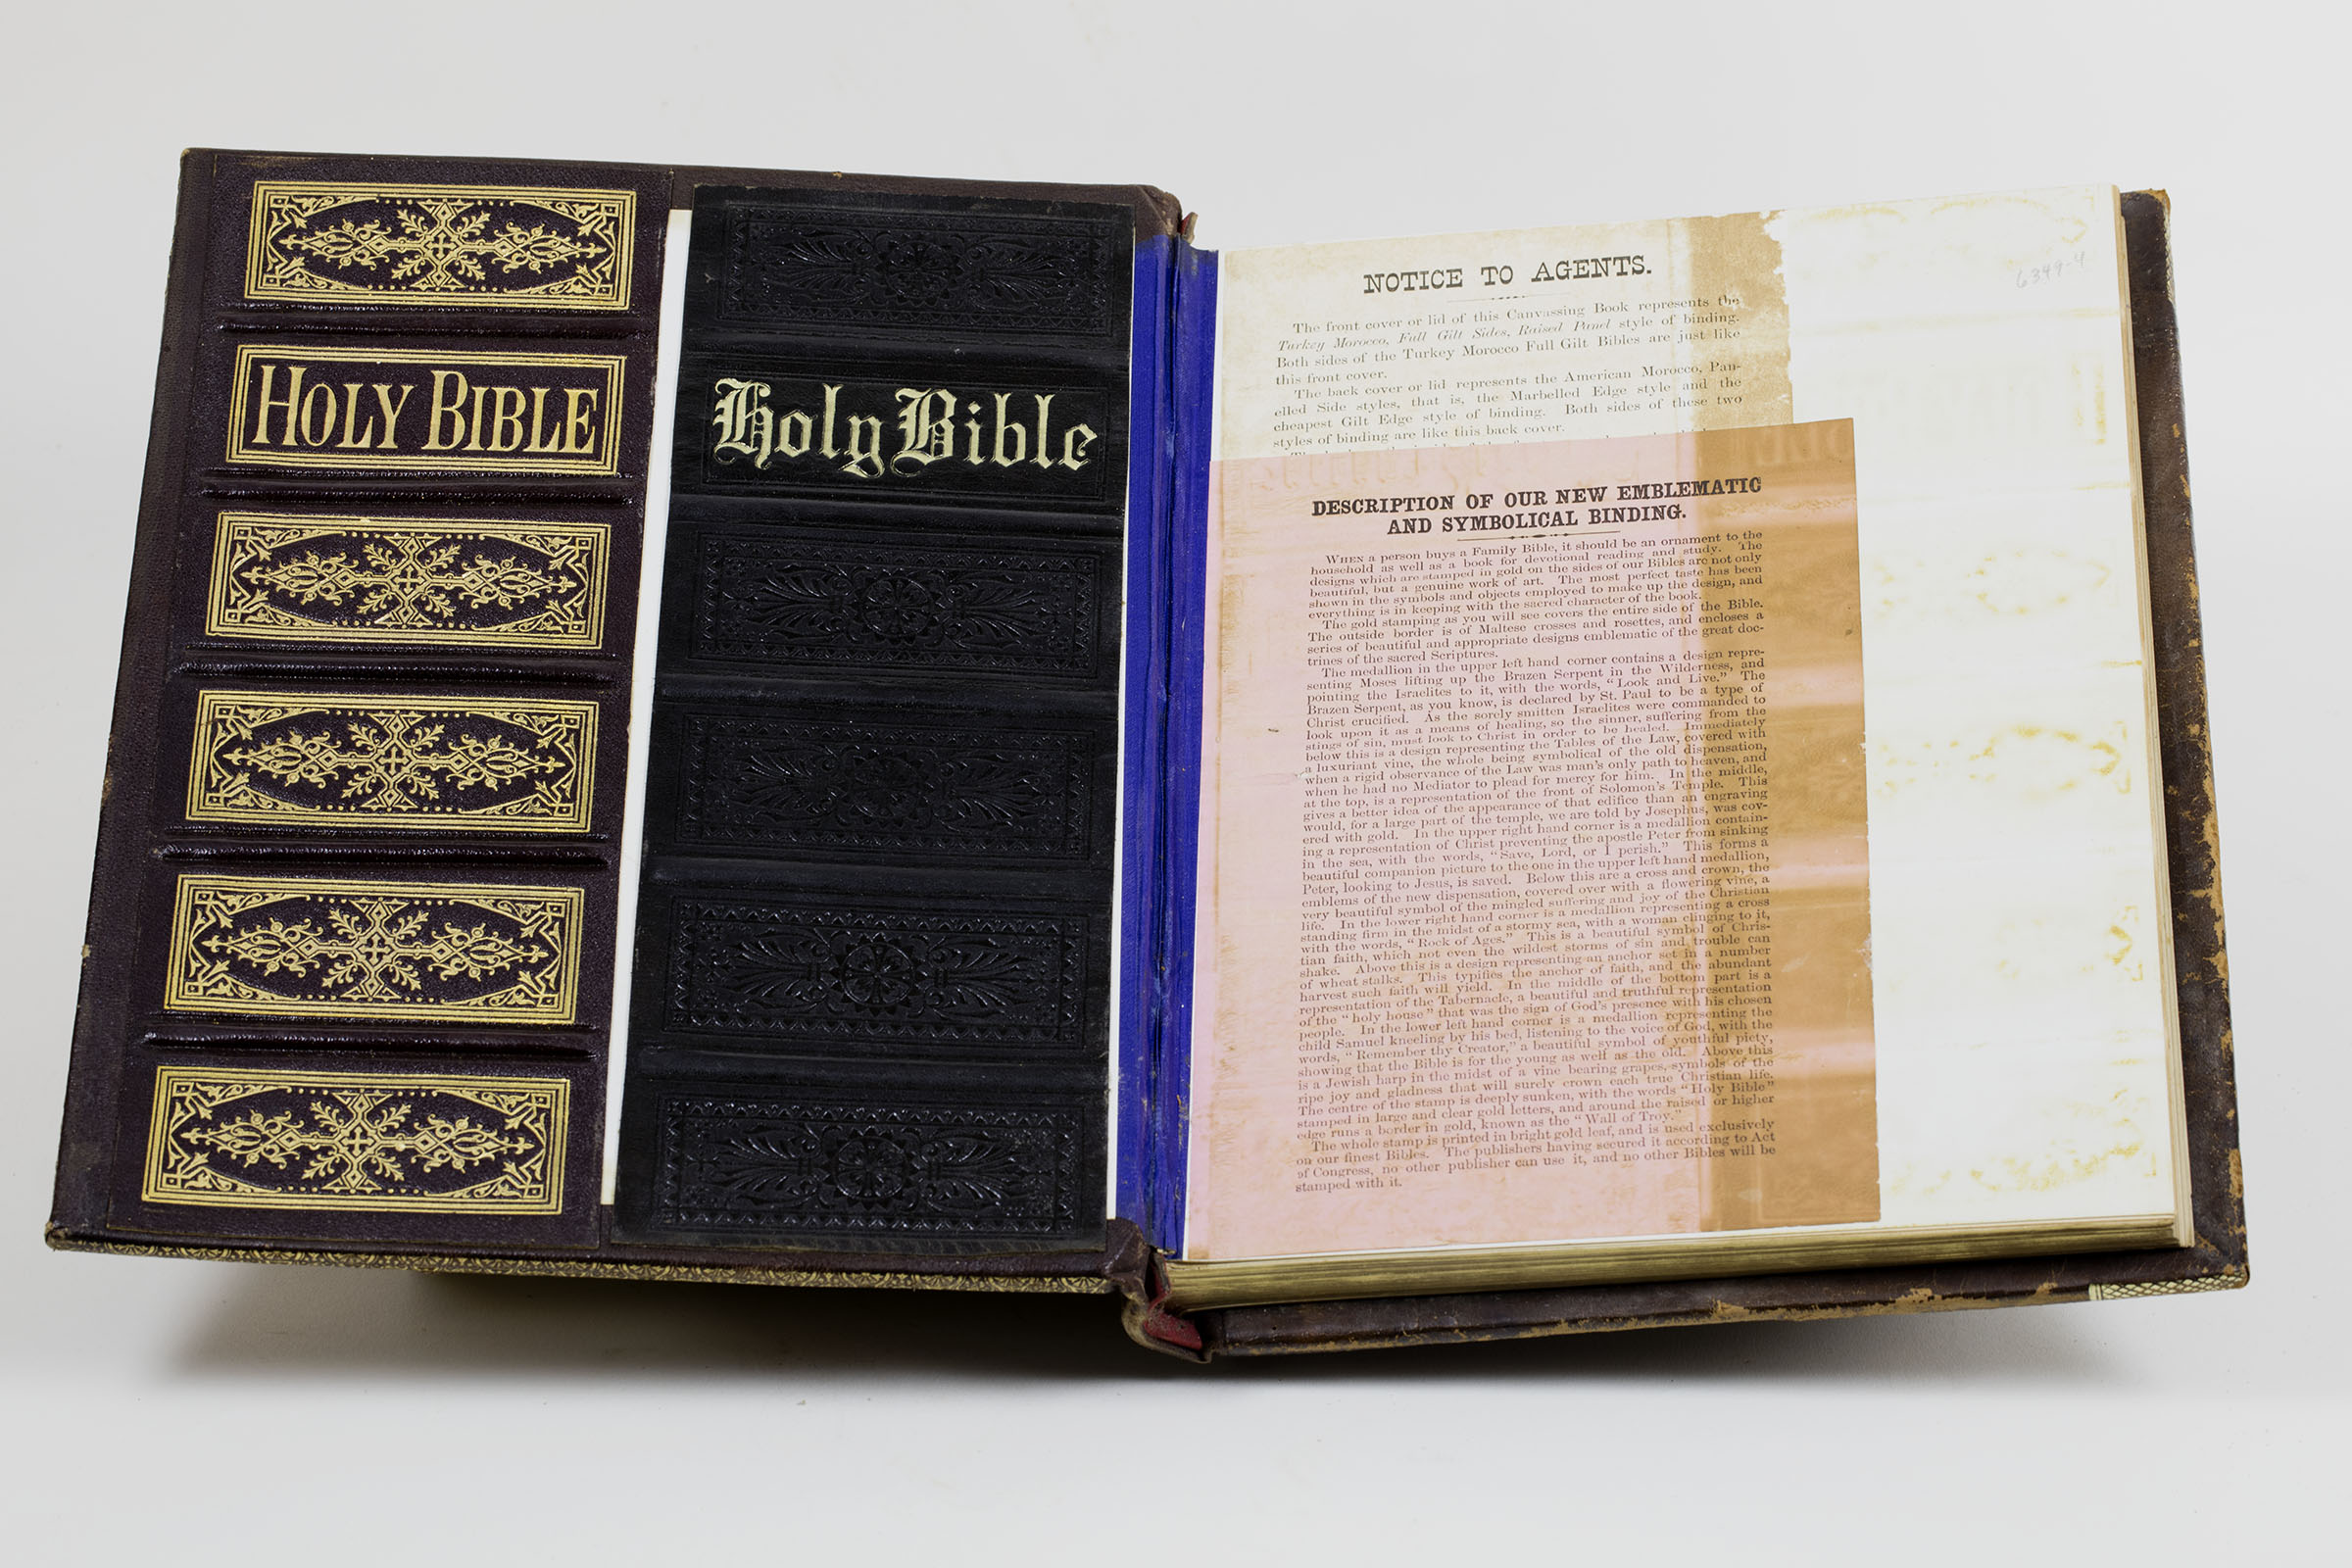 New Devotional and Explanatory Pictorial Family Bible (Philadelphia, 1879). Canvassing book. Michael Zinman Binding Collection.